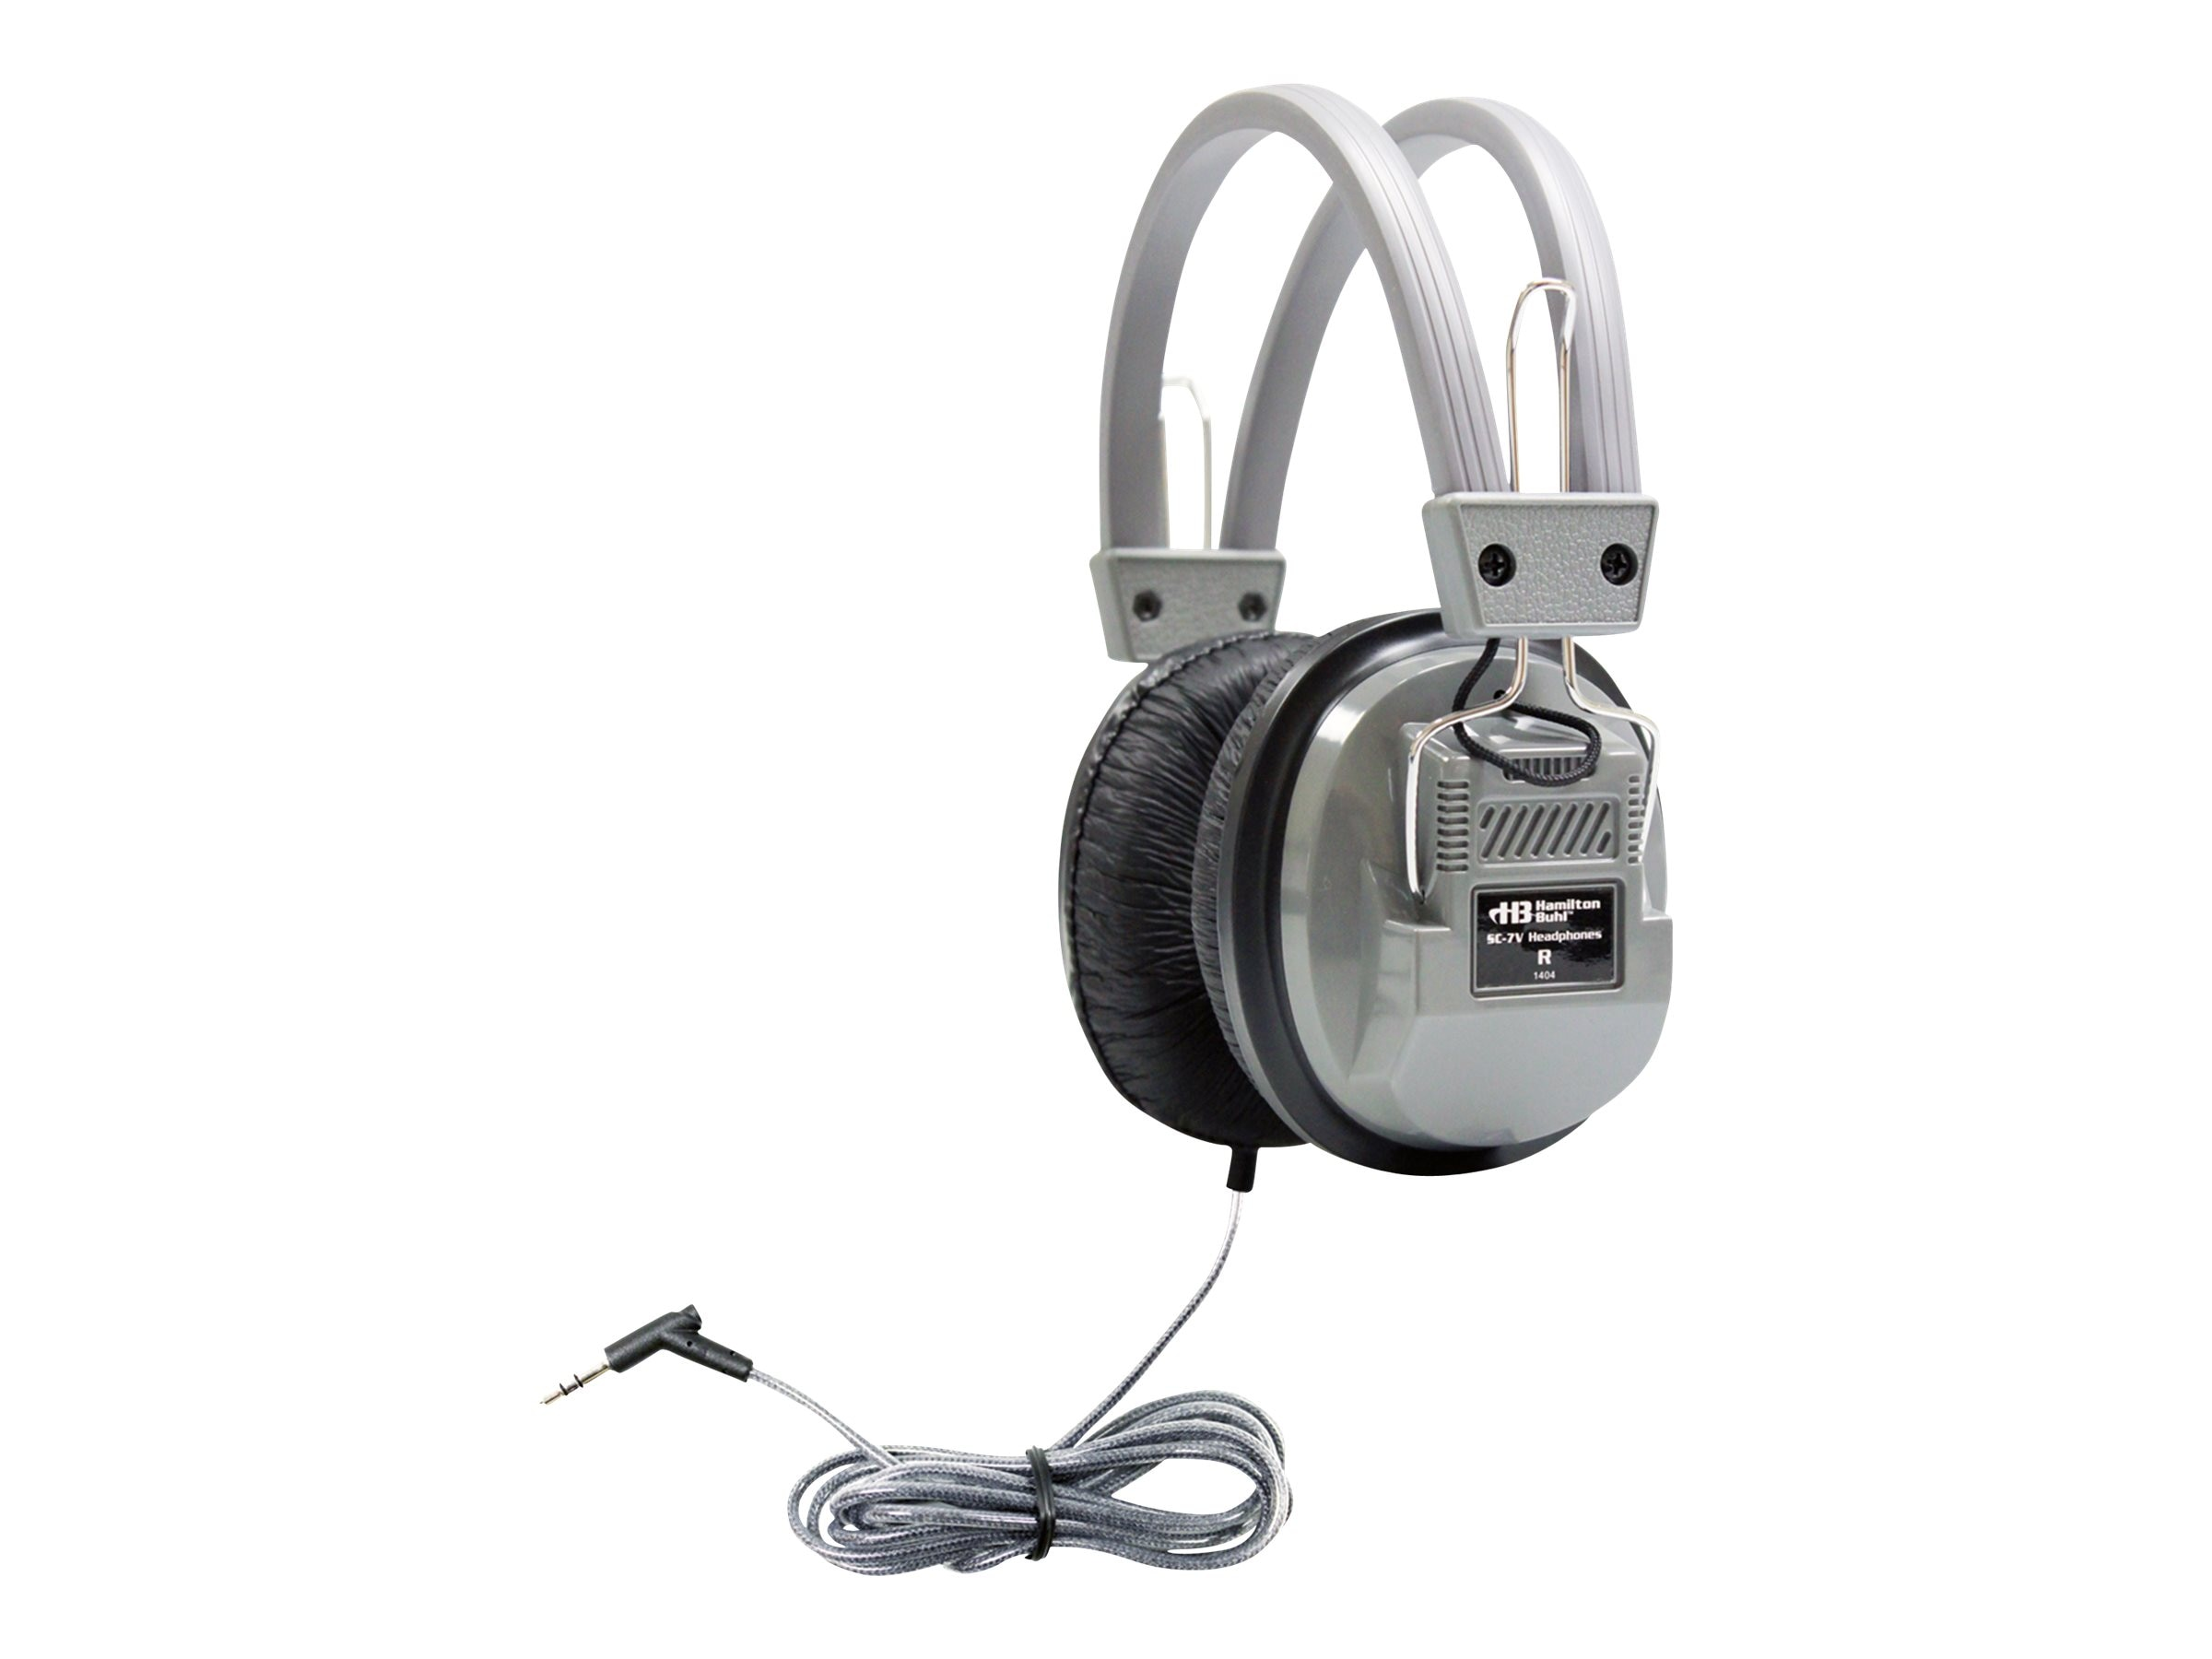 Hamilton SC-7V Over-Ear Stereo Headphones w  Volume Control, SC-7V, 10119339, Headphones